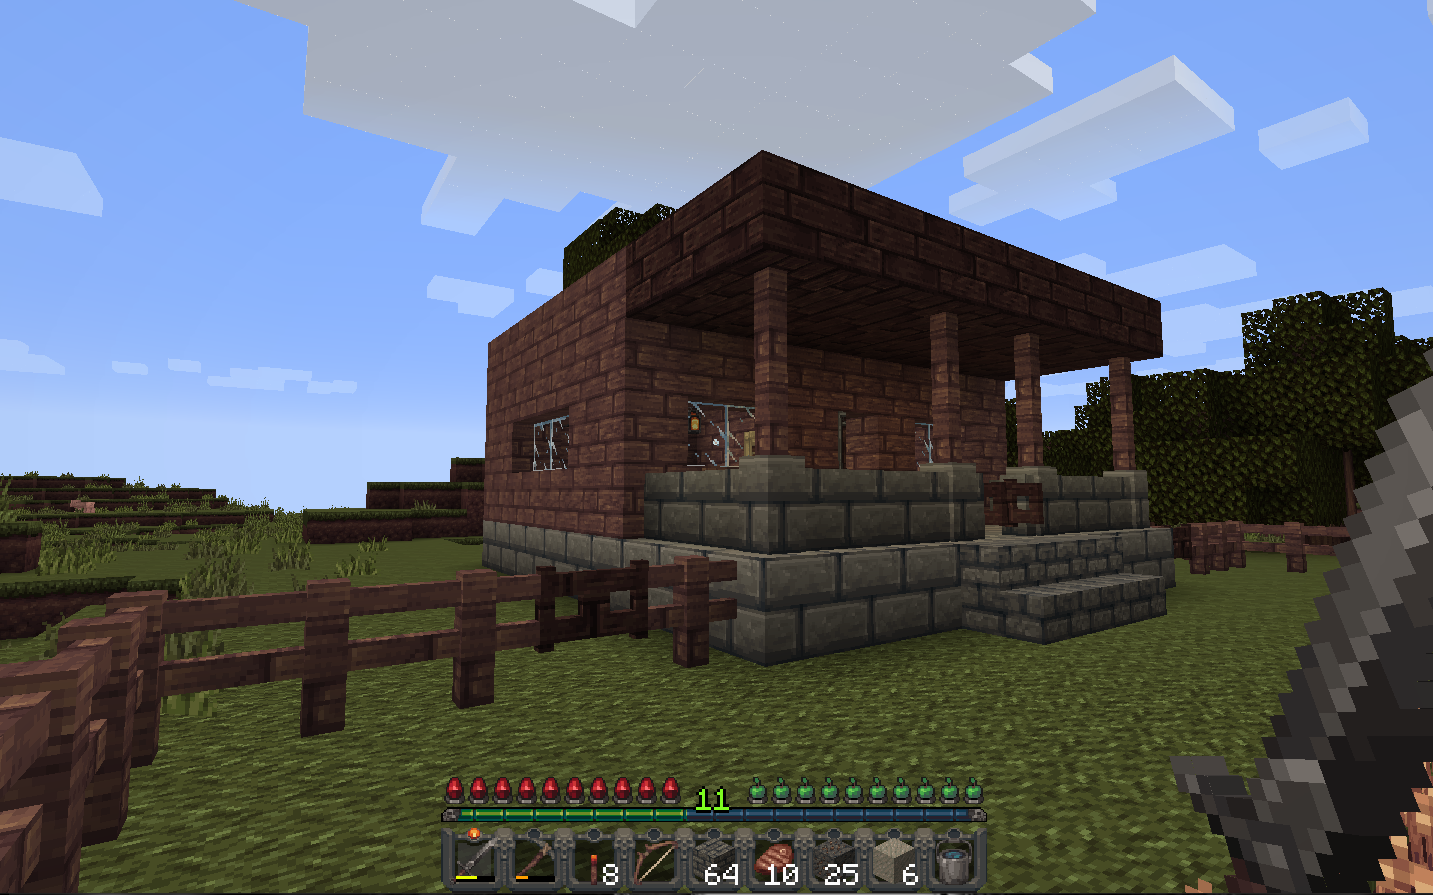 A minecraft house with the Mythic Resource Pack textures downloaded